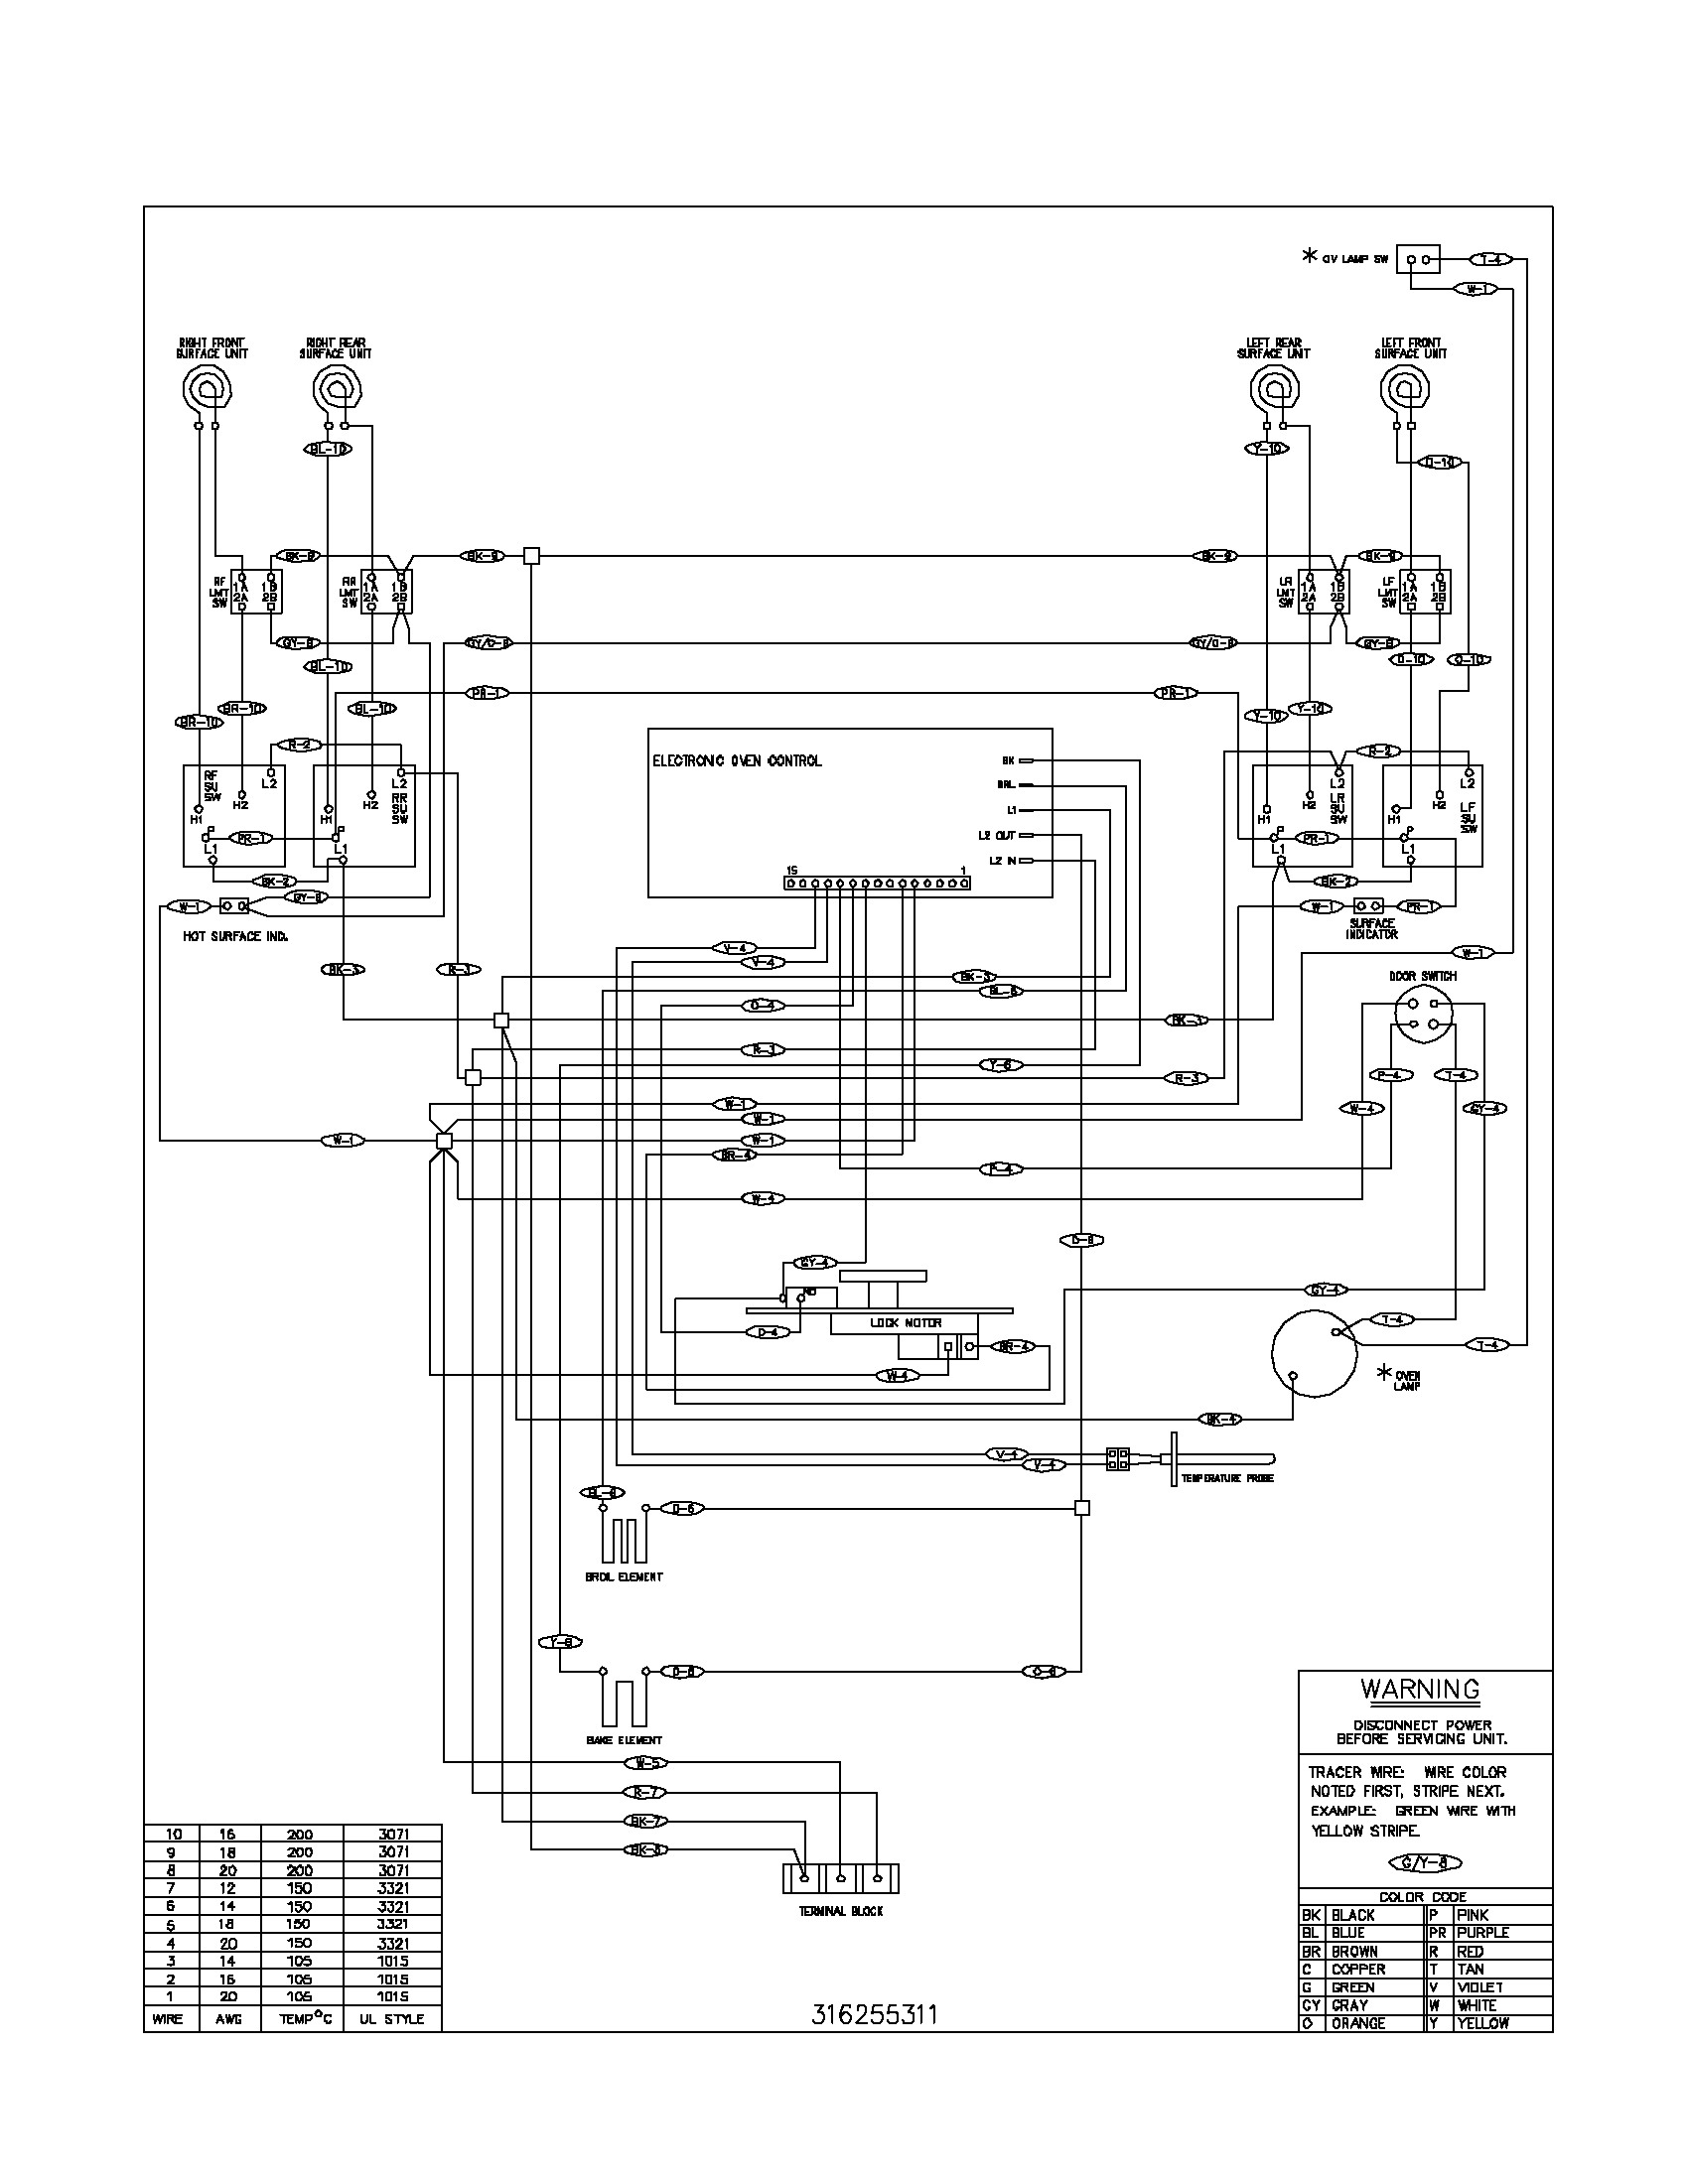 Frigidaire Air Conditioner Wiring Diagram